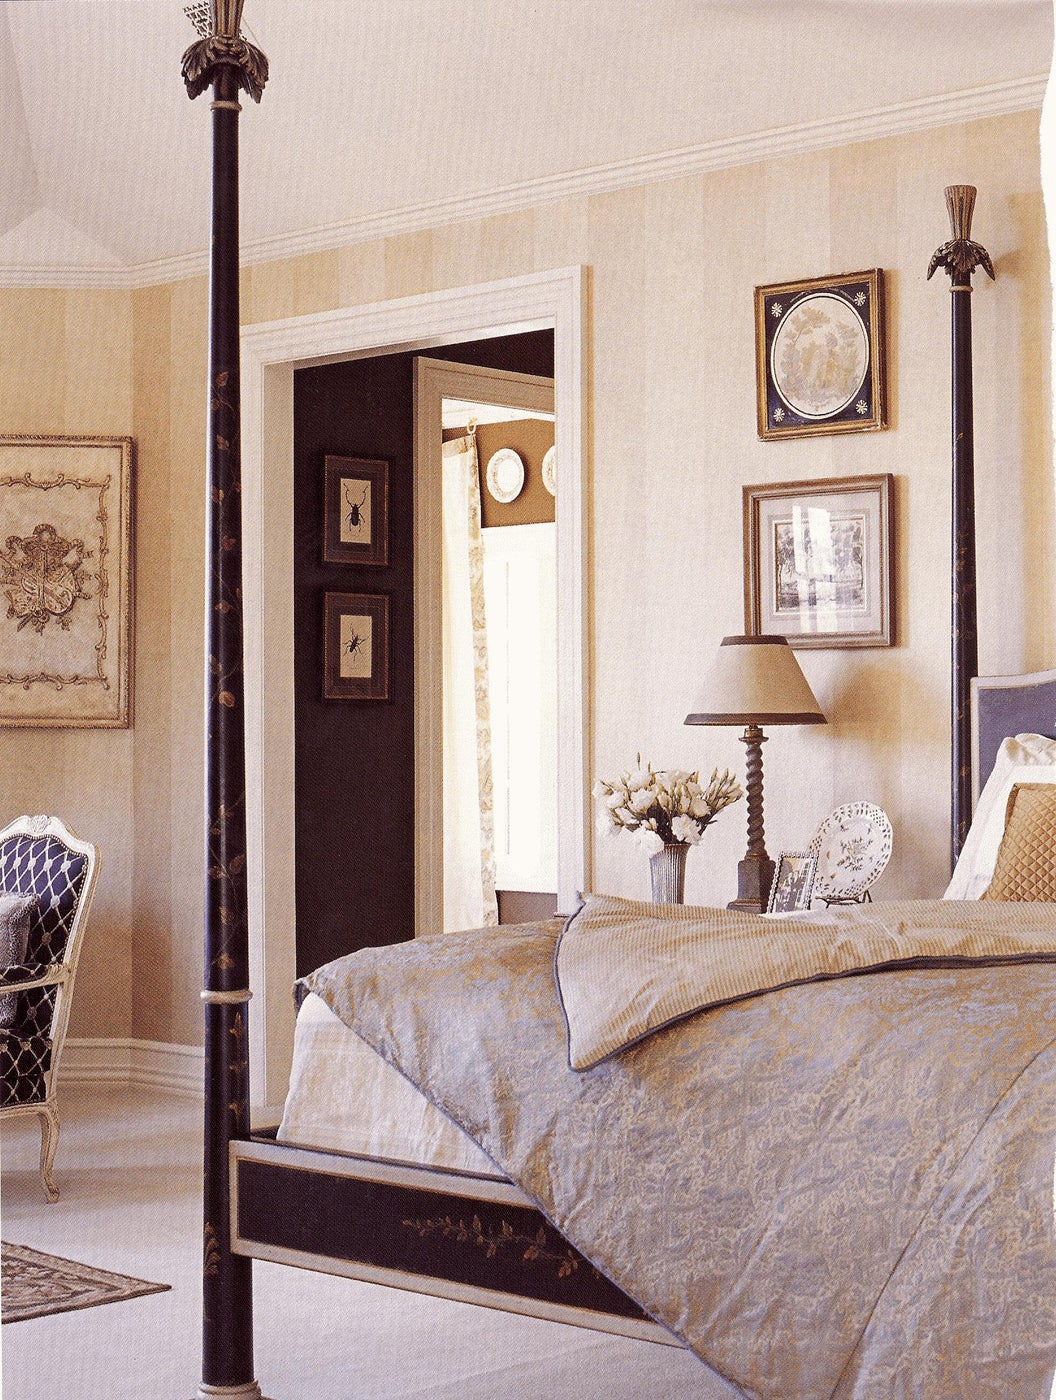 Classic Master Bedroom with Four Poster Bed